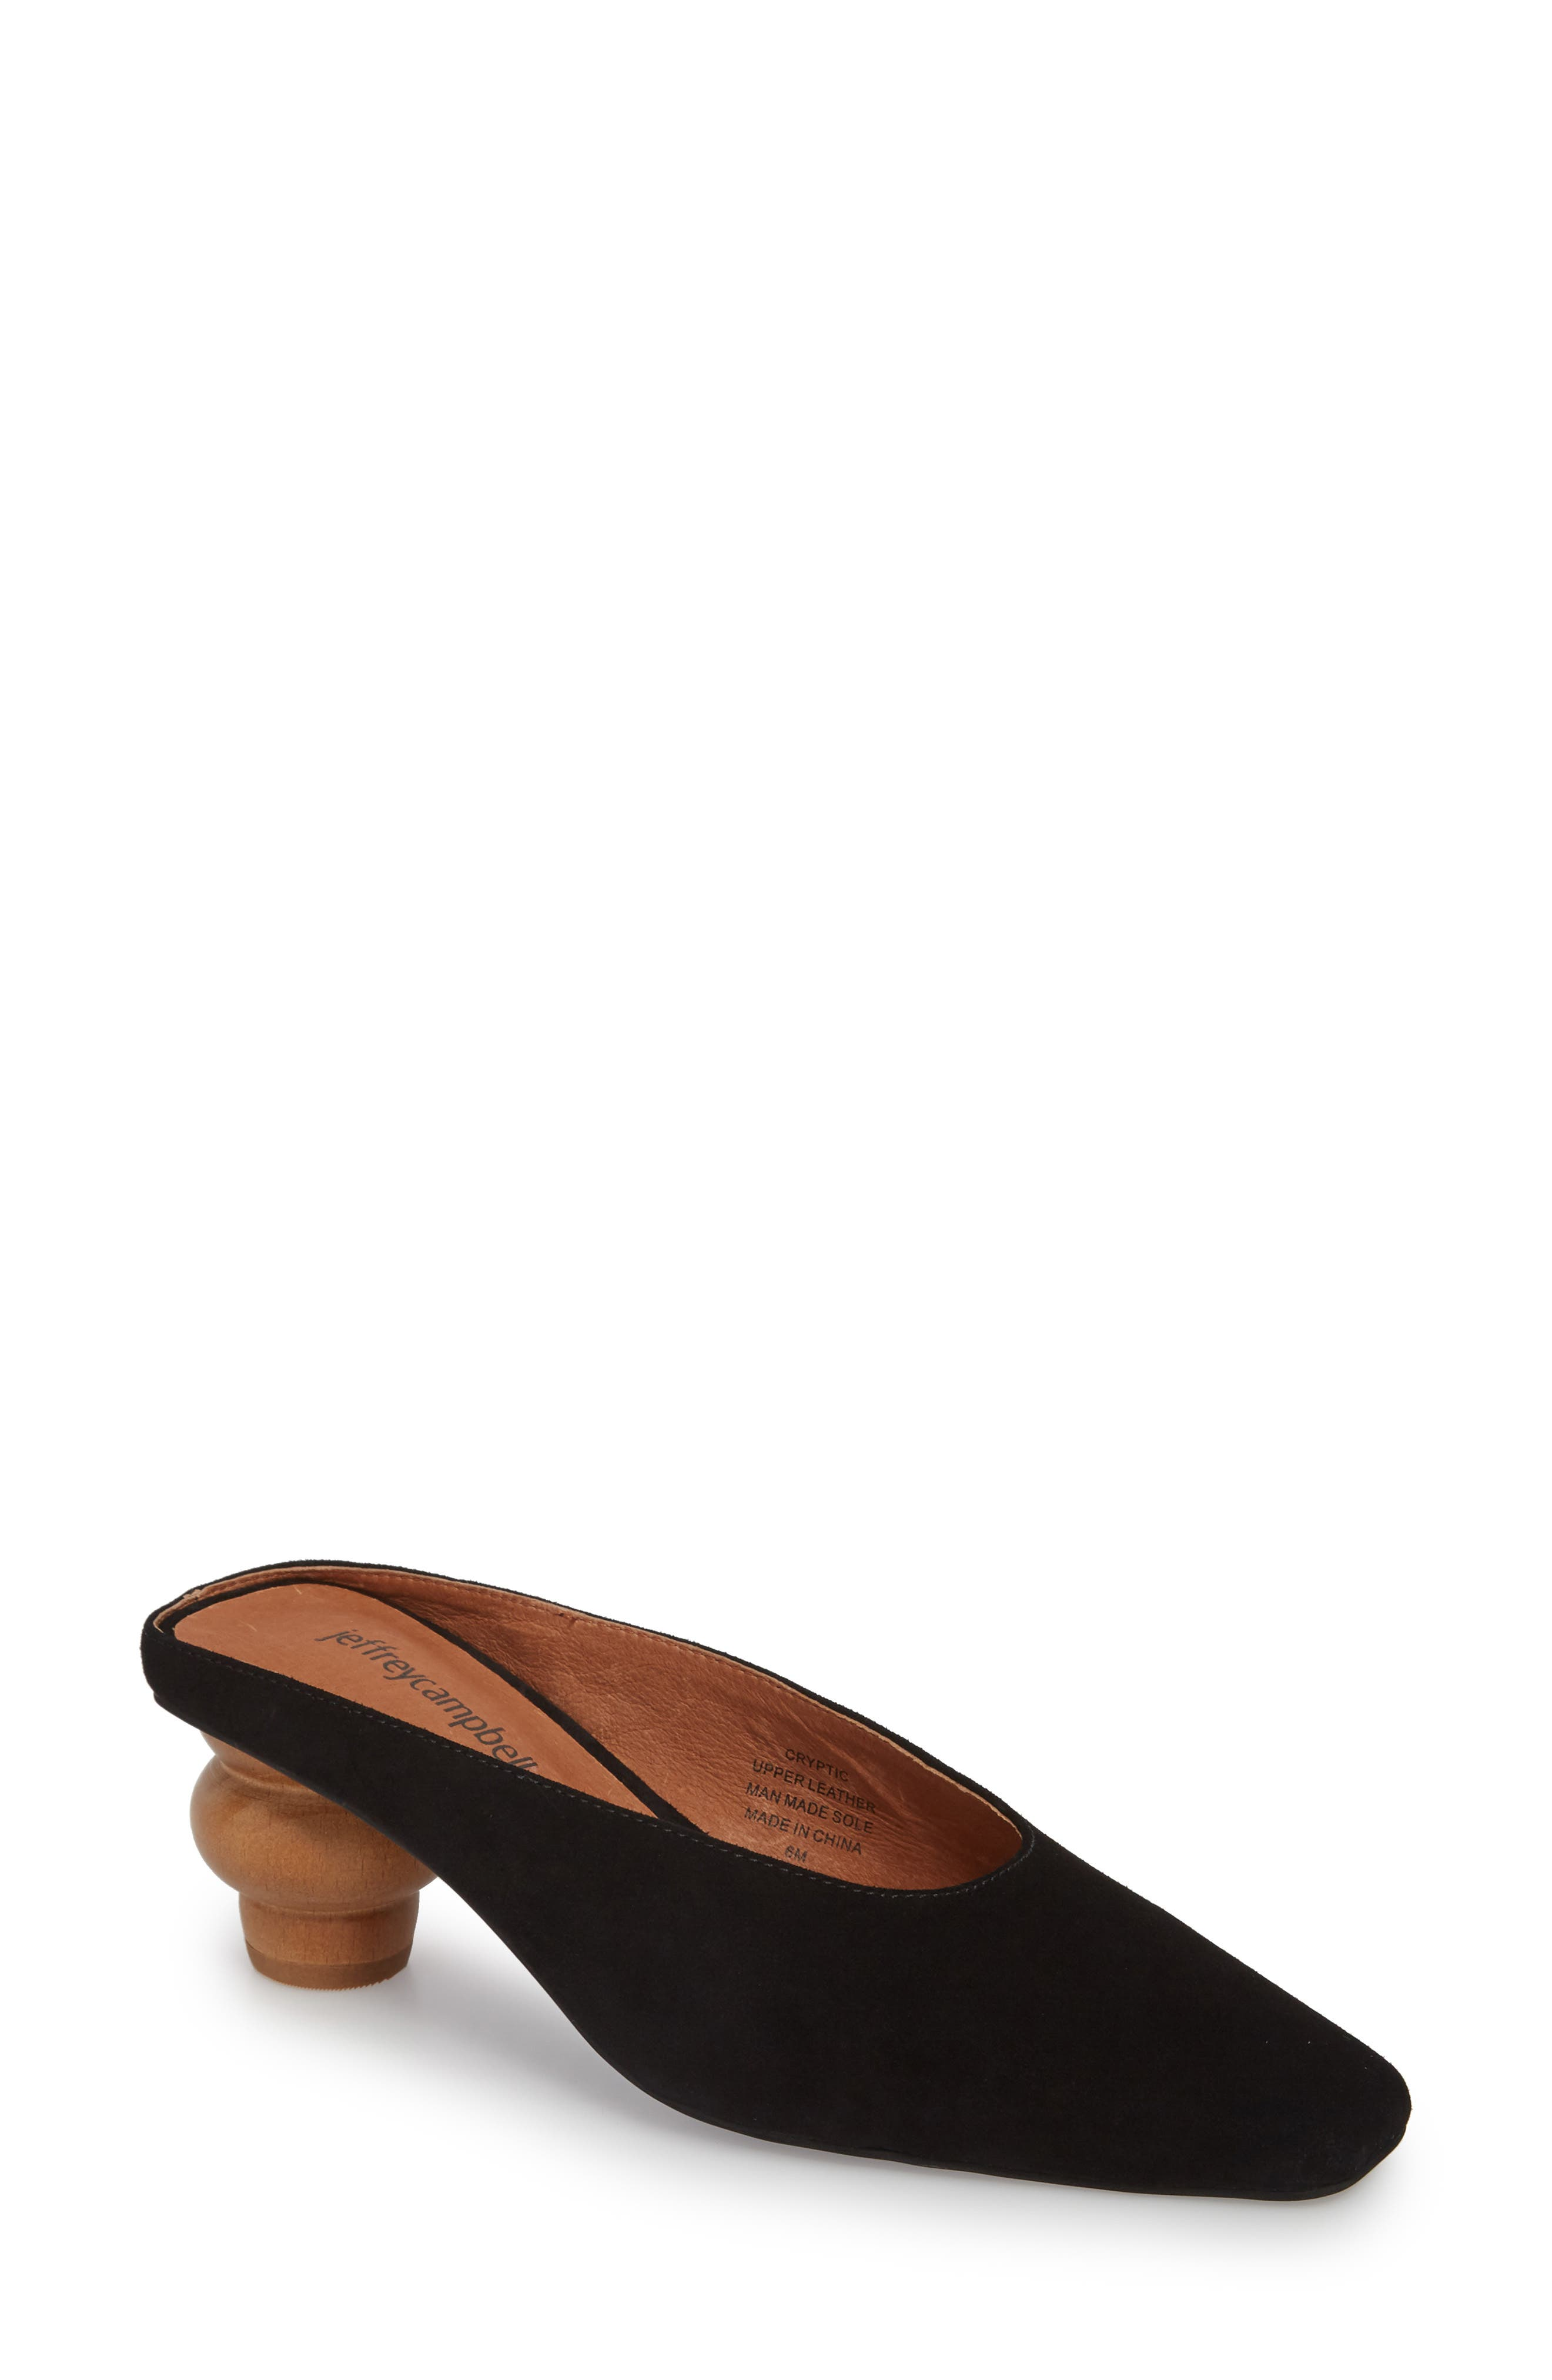 JEFFREY CAMPBELL,                             Cryptic Statement Heel Mule,                             Main thumbnail 1, color,                             005